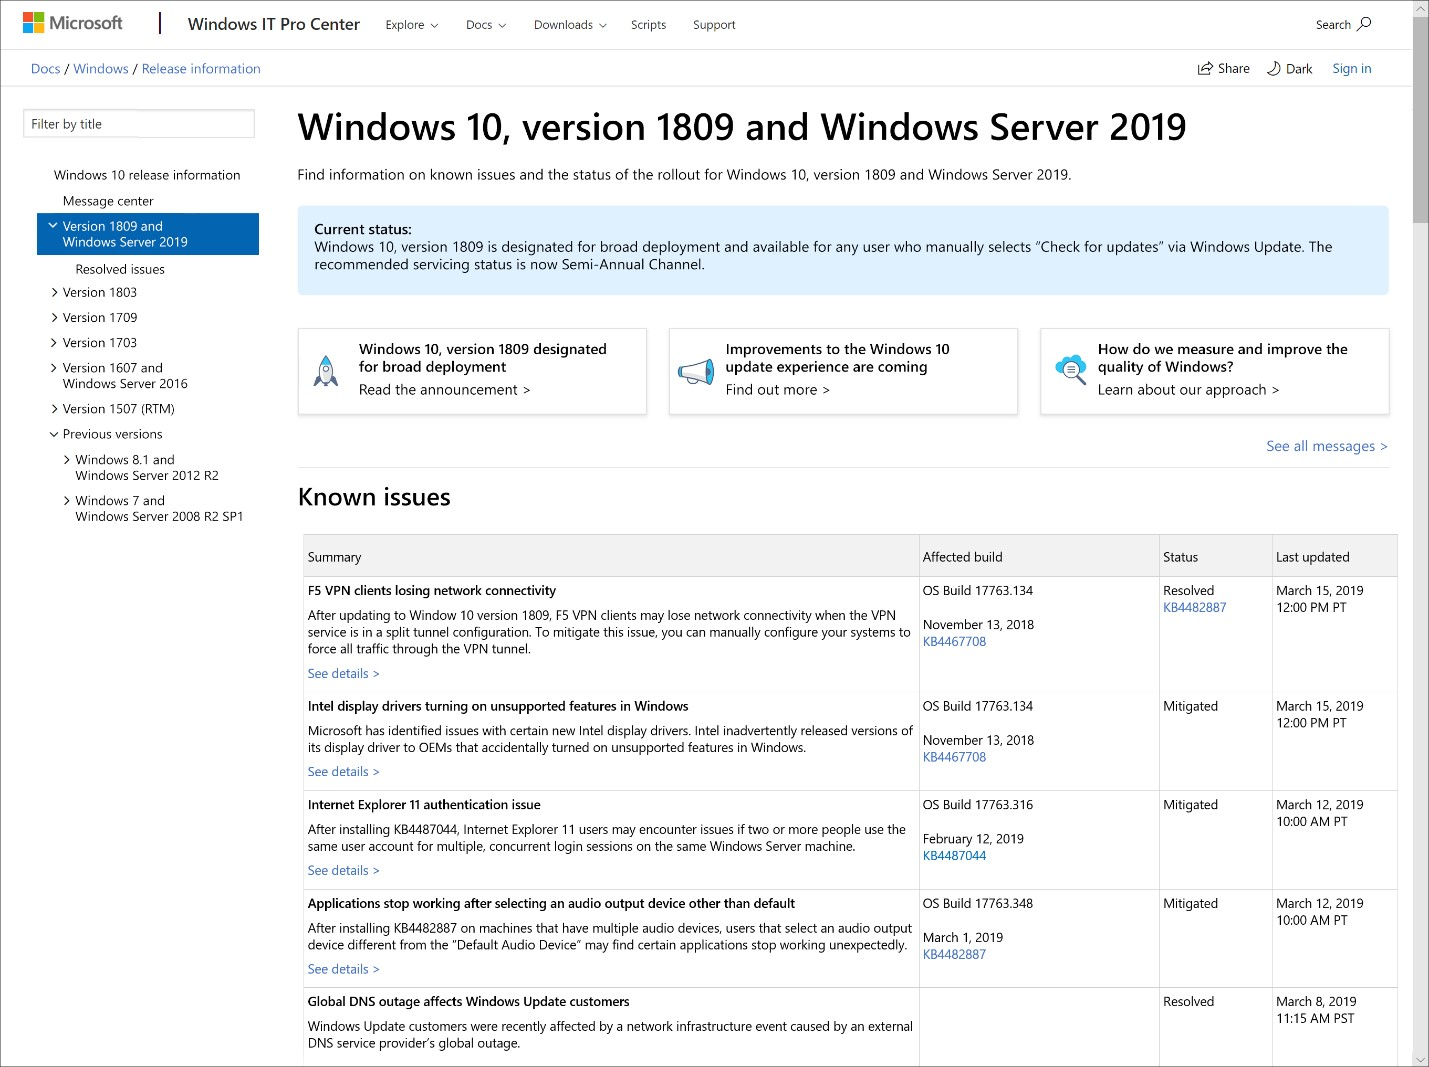 Windows 10 May 2019 Update announced, and major update changes